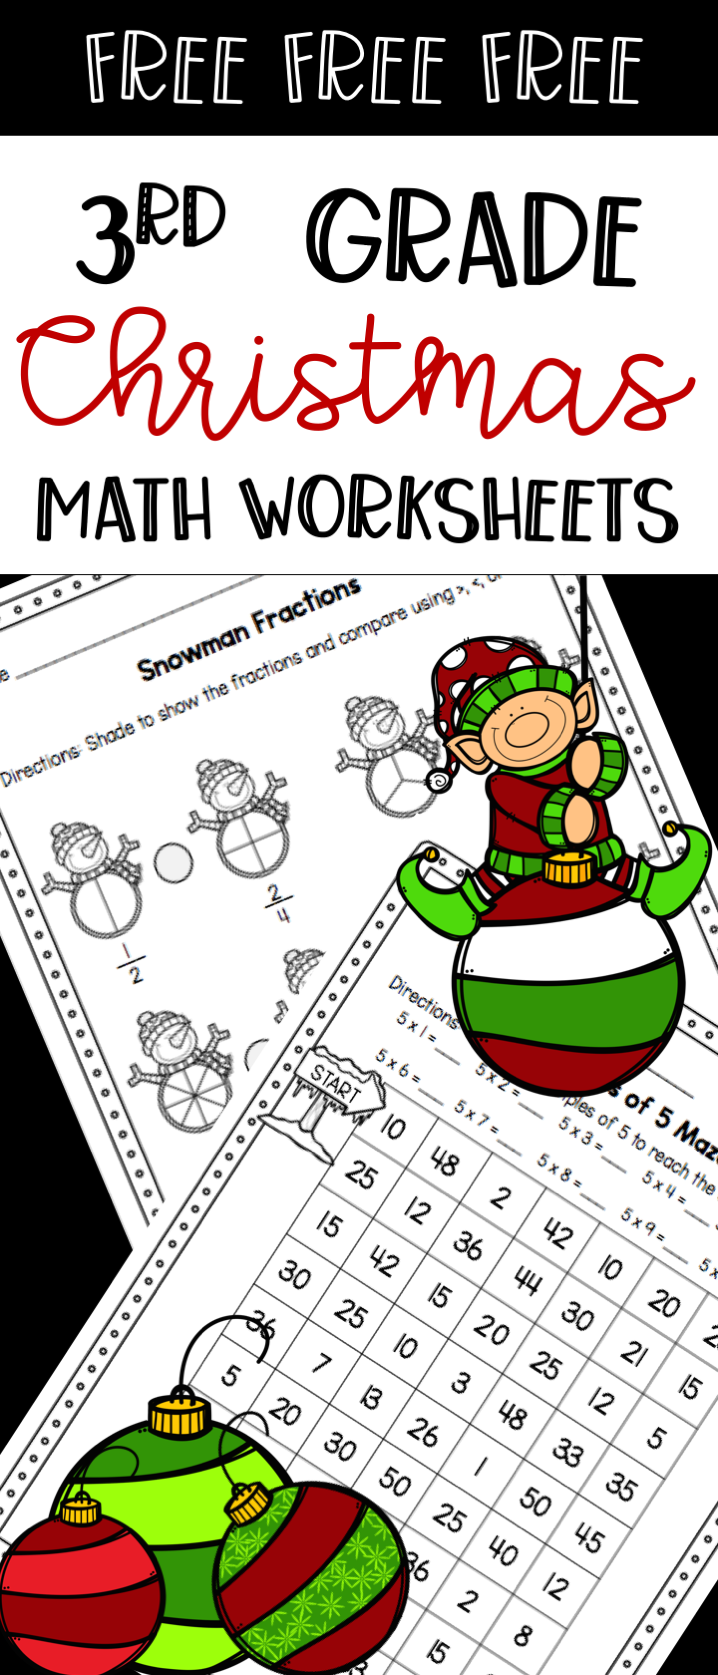 hight resolution of Free 3rd grade Christmas math worksheets - comparing fractions and  multiplication products of 5 - fun rev…   Christmas math worksheets